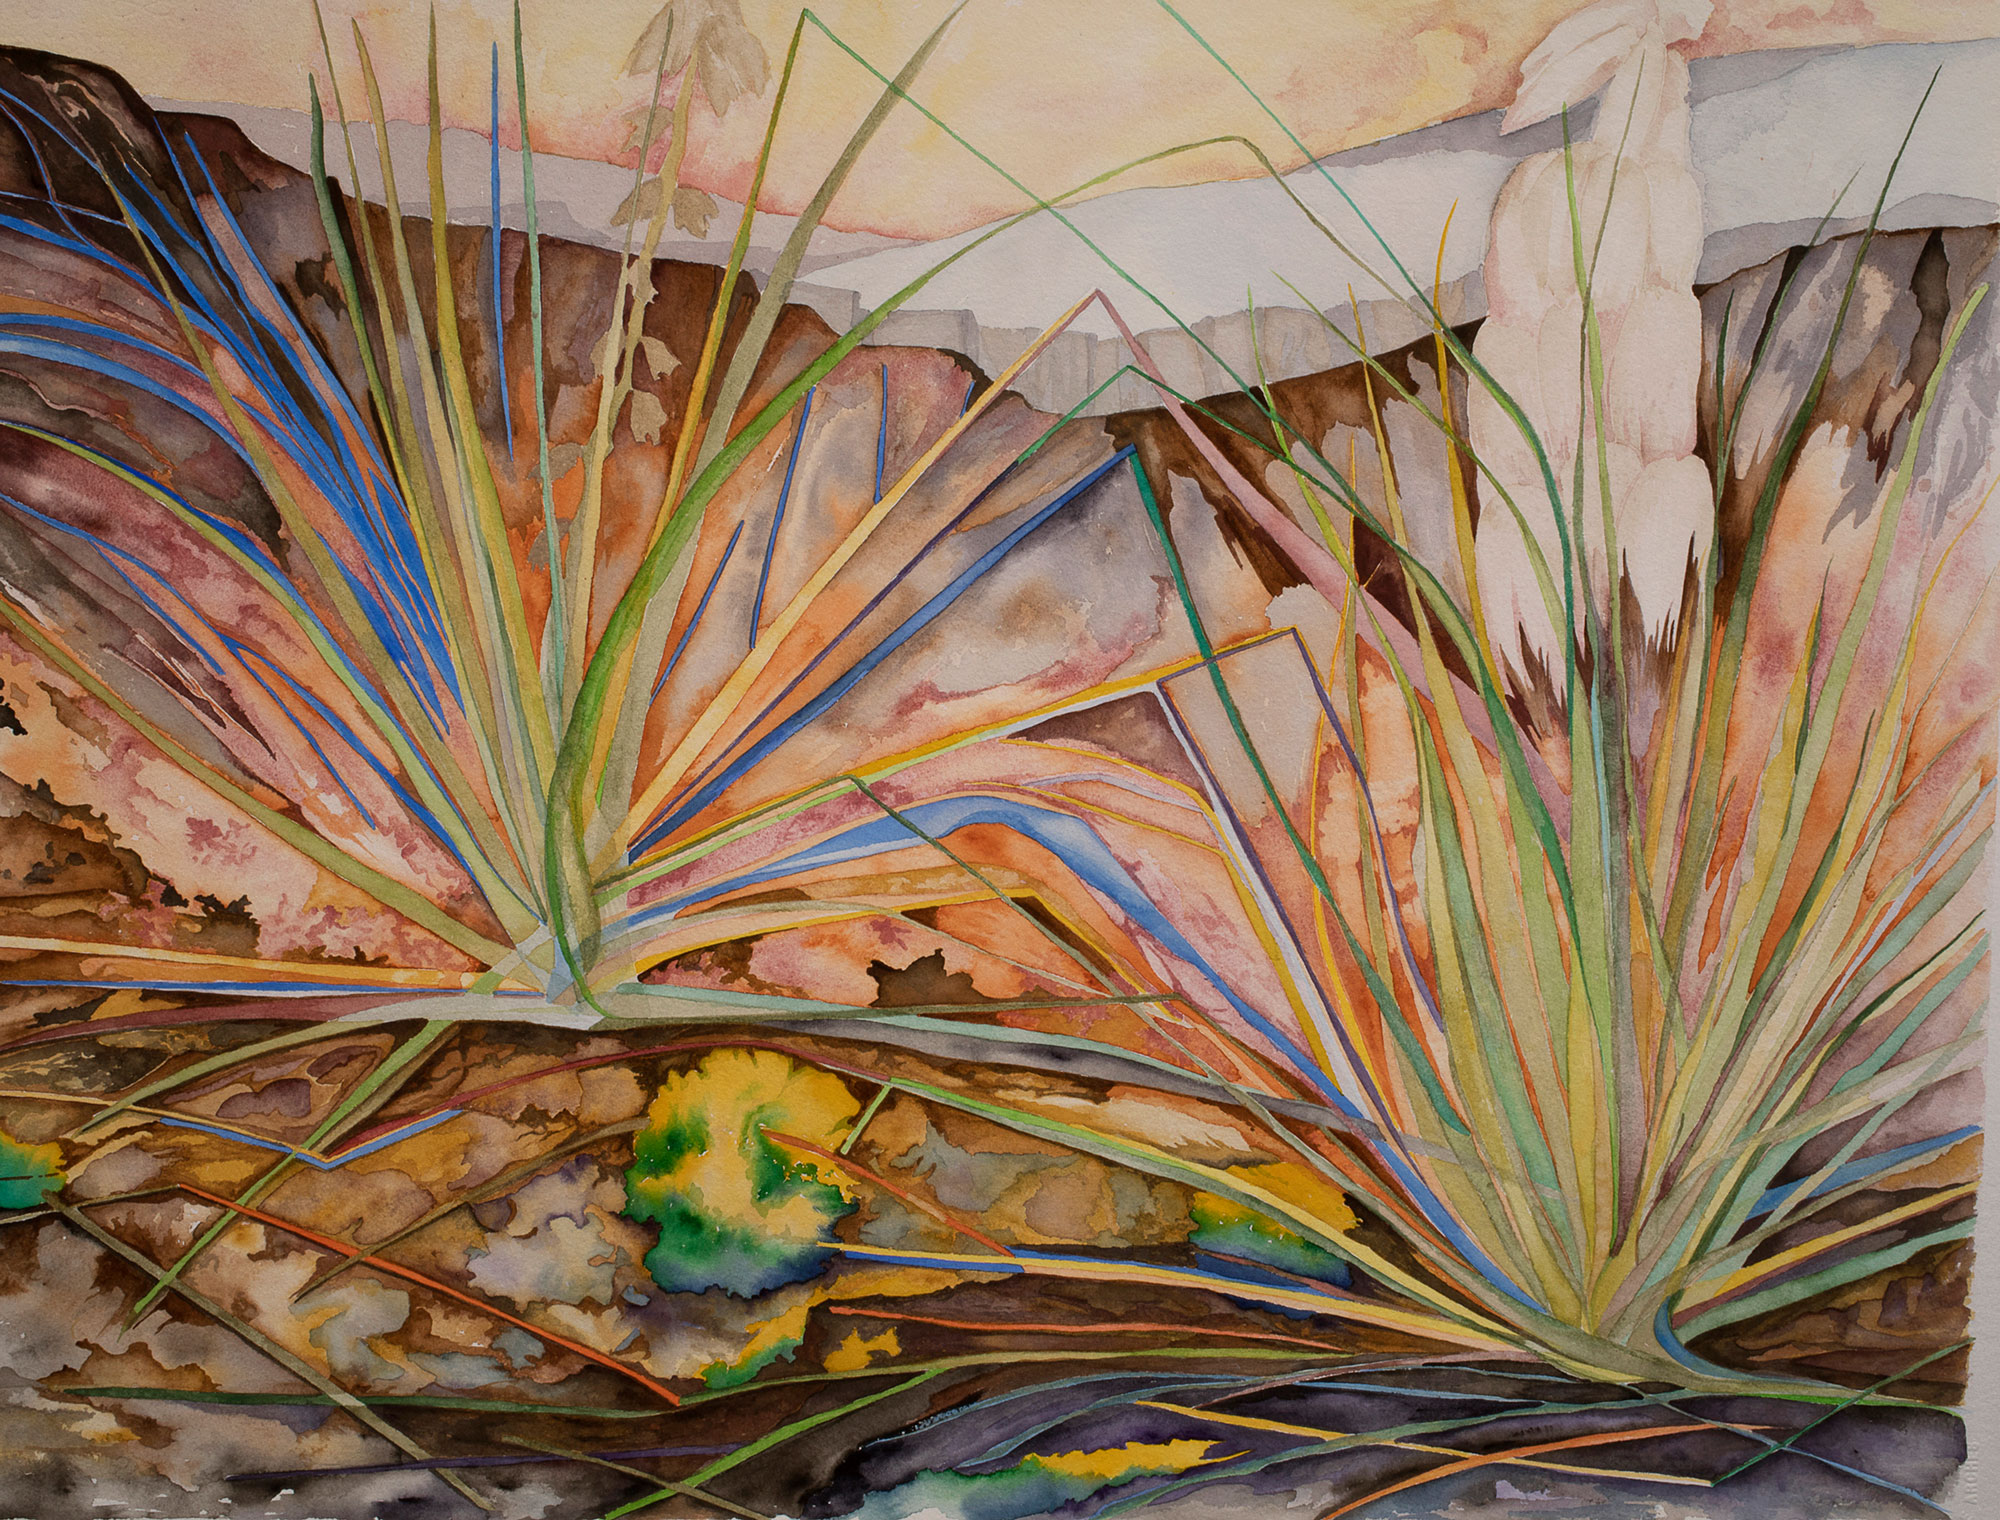 Untitled Yucca series #1, 2017, watercolor on Arches watercolor paper, 22 x 30 in.